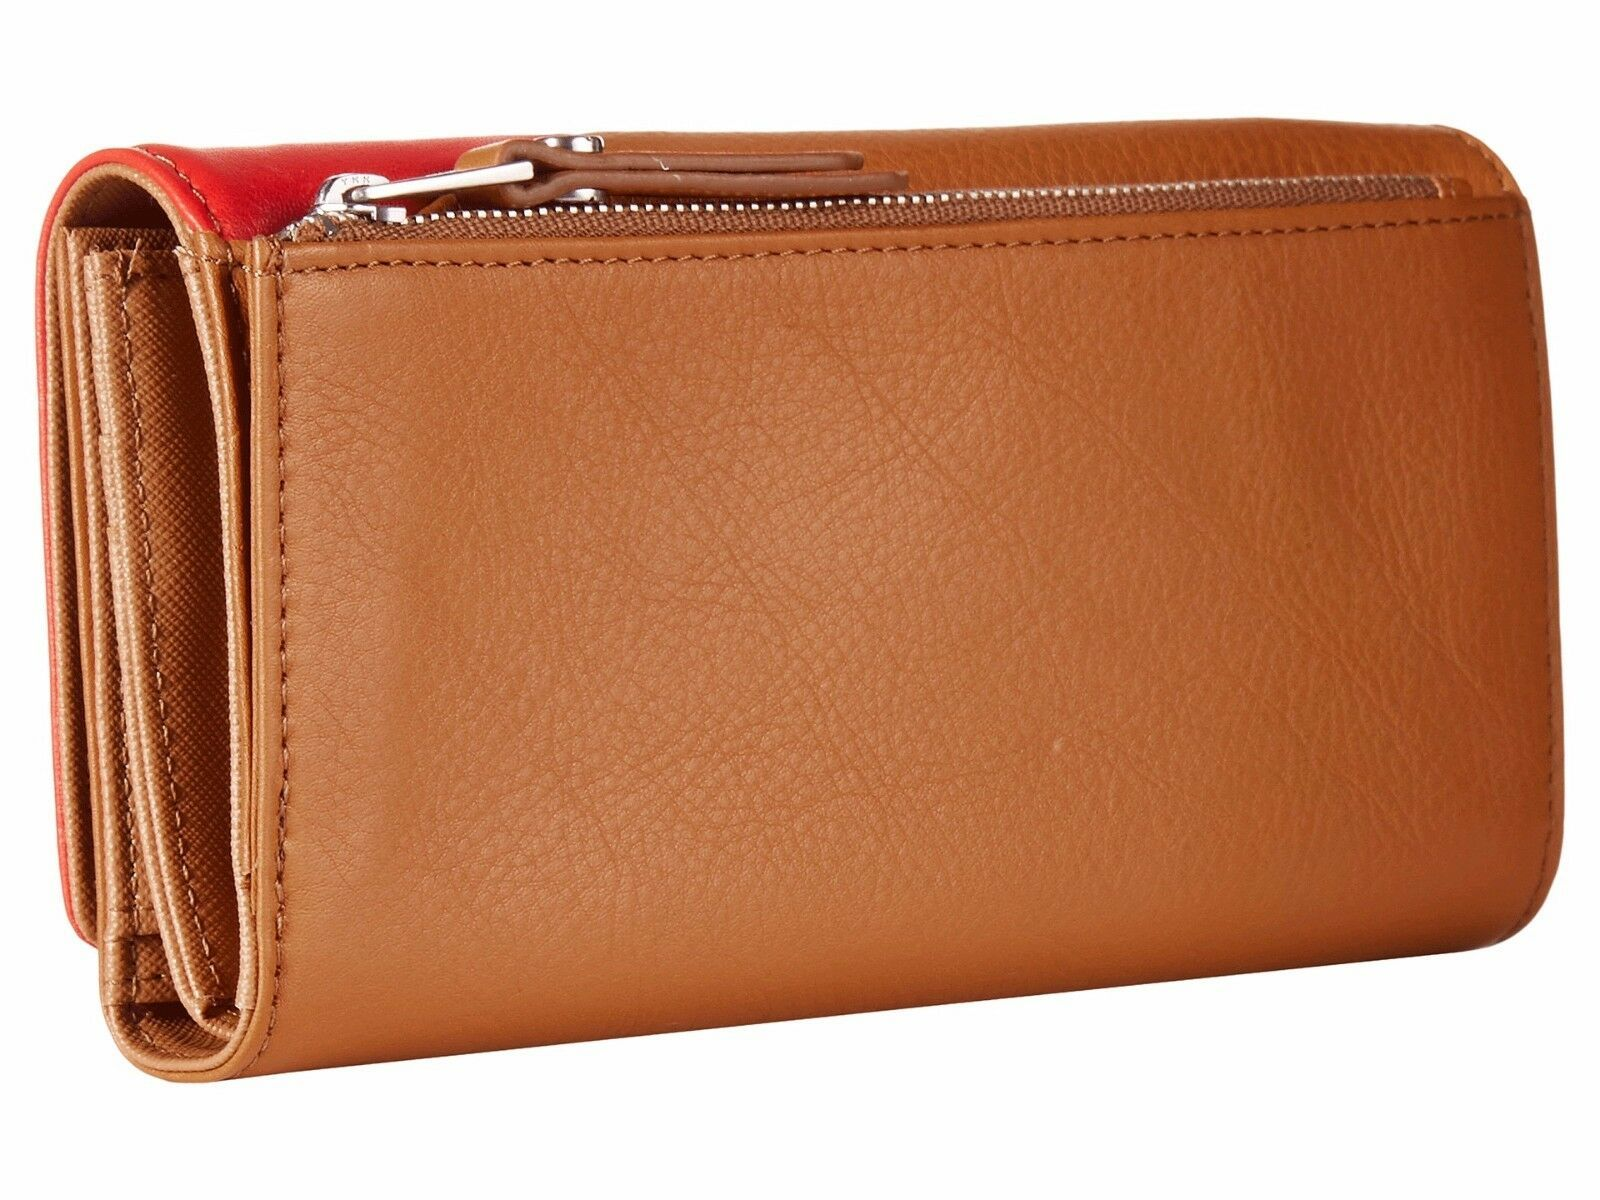 New Fossil Dawson Women Flap Leather Clutch Variety Color image 7